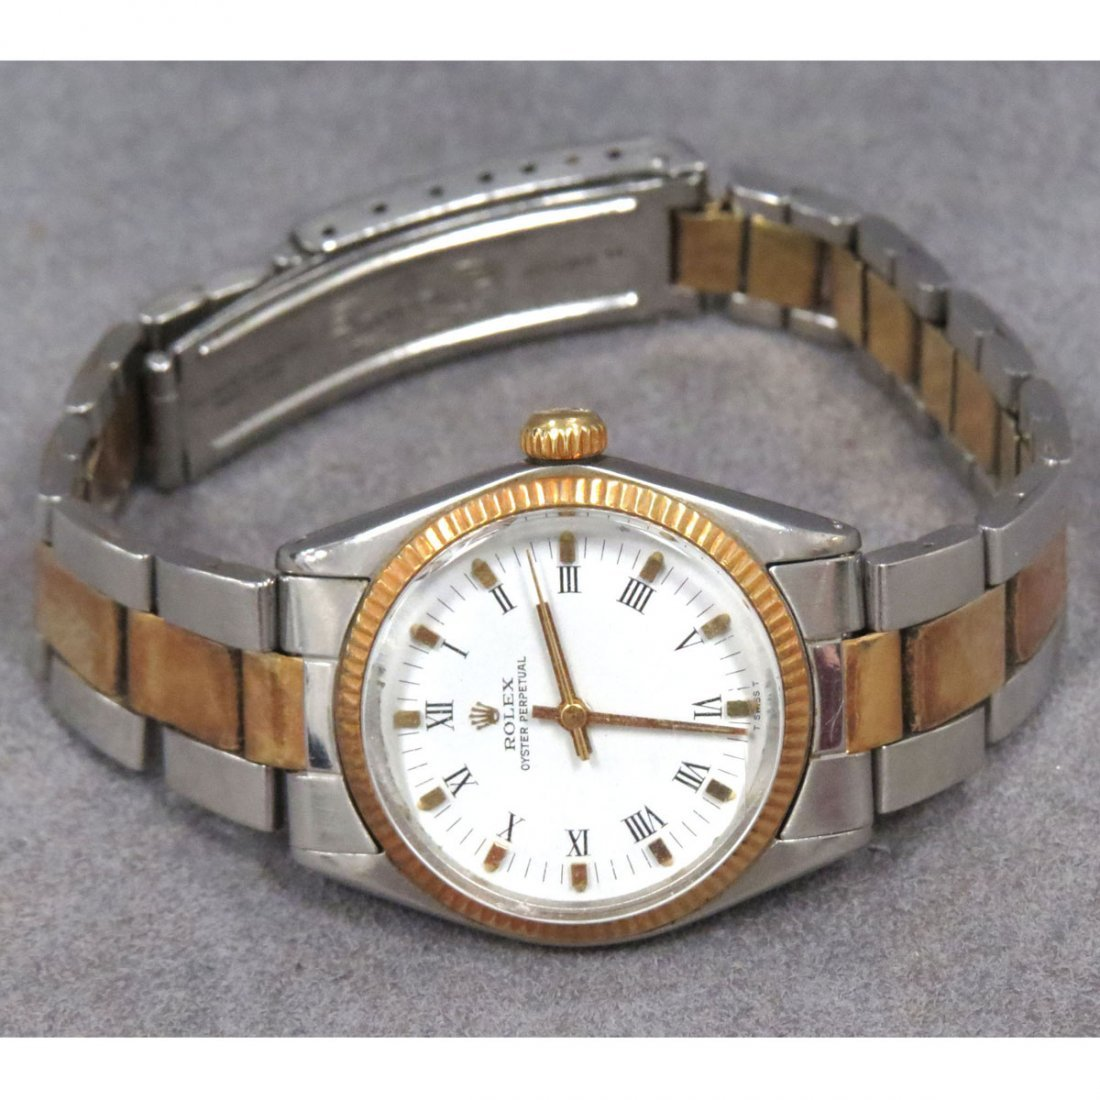 VINTAGE WOMAN'S ROLEX OYSTER PERPETUAL WATCH